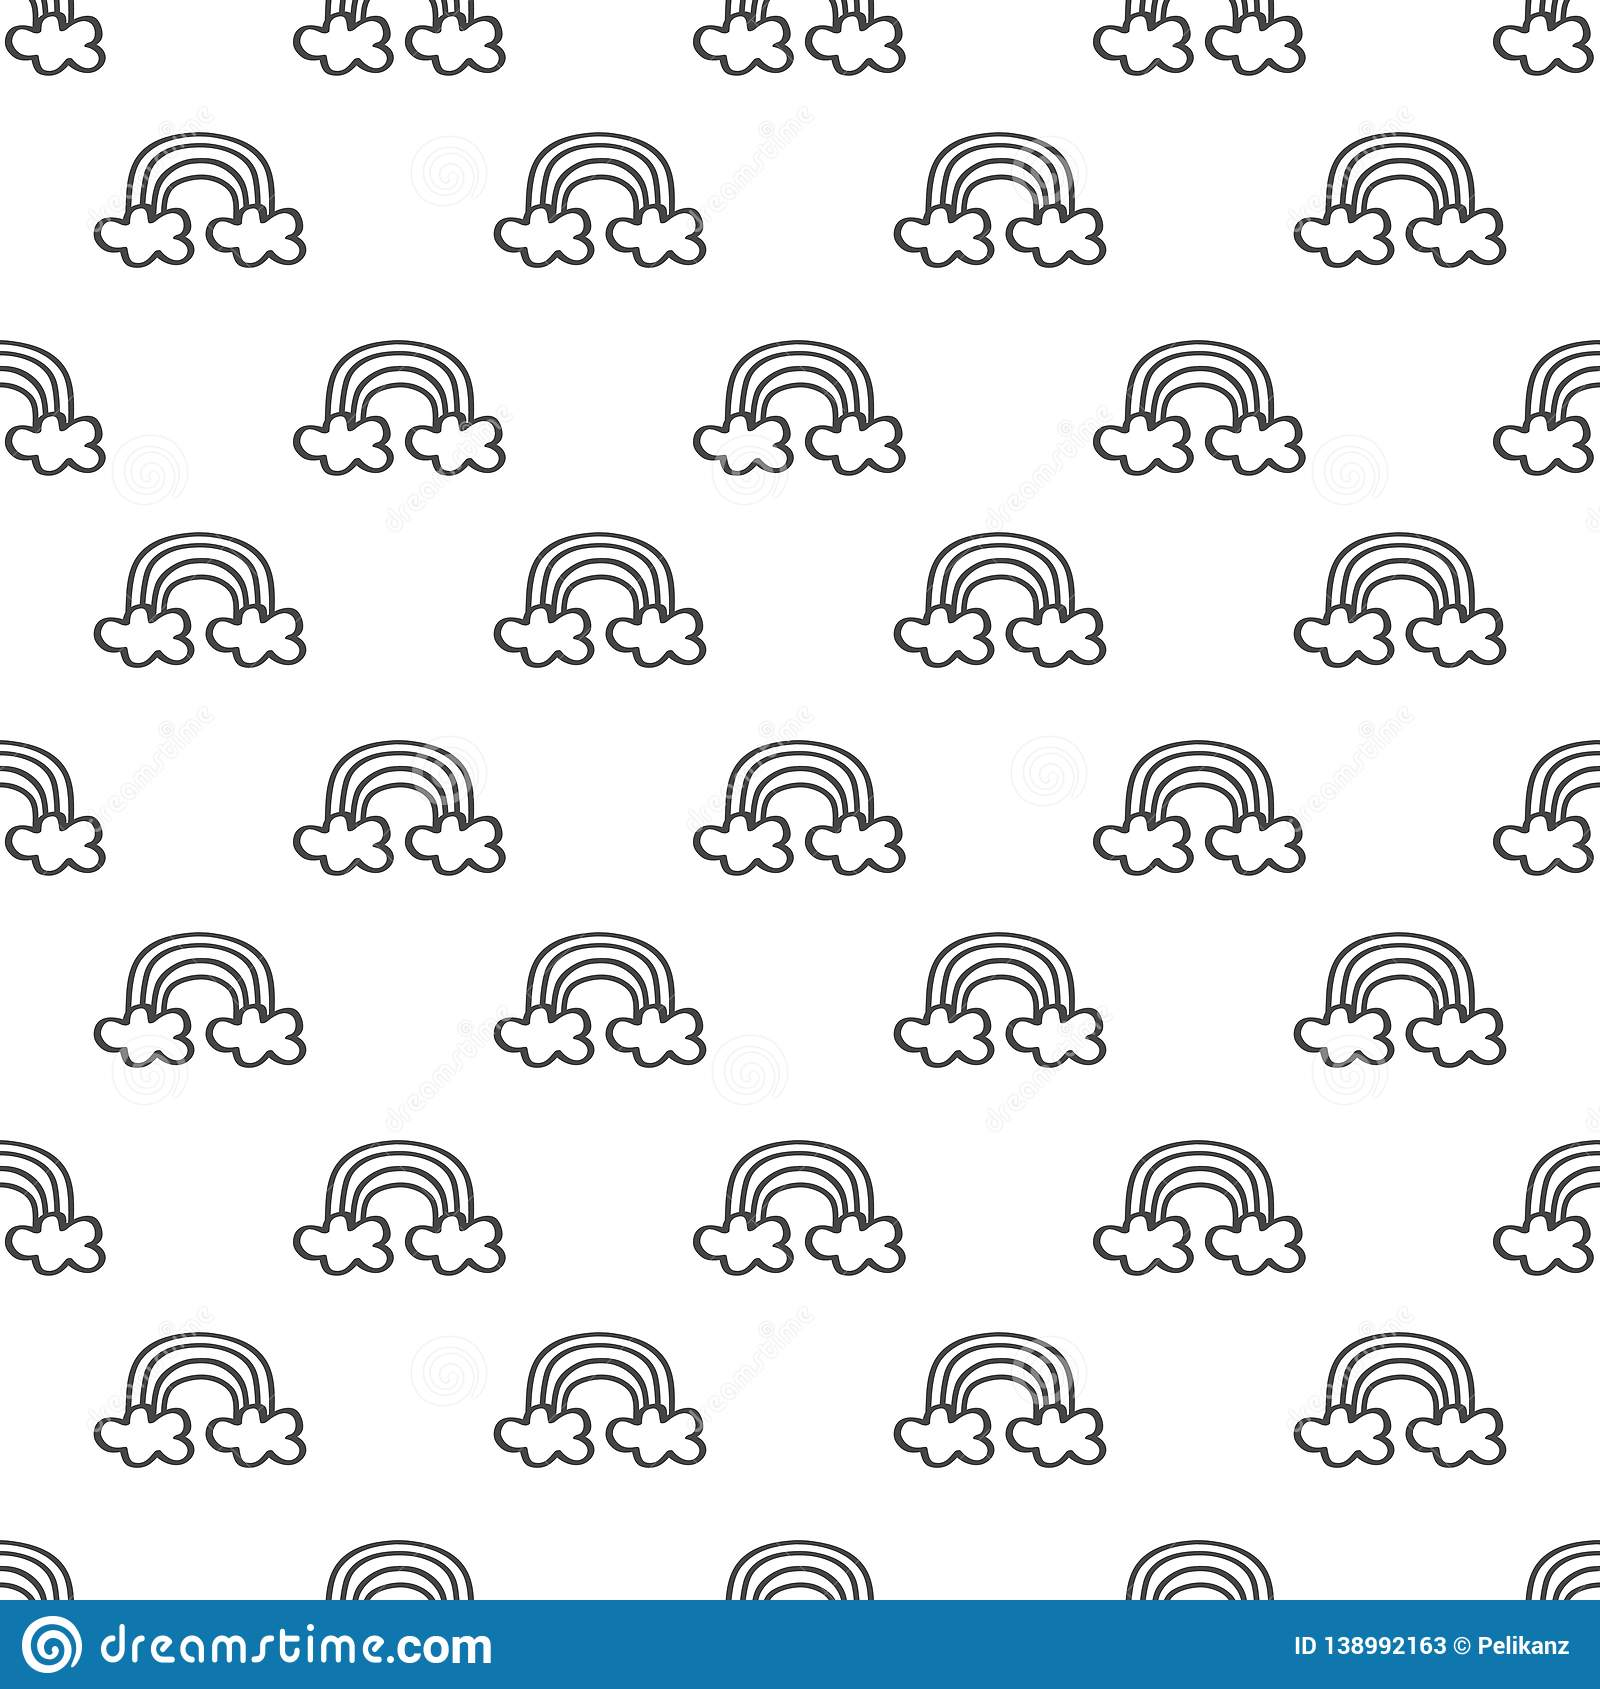 Cute rows of hand drawn black line little rainbows with clouds pattern on white